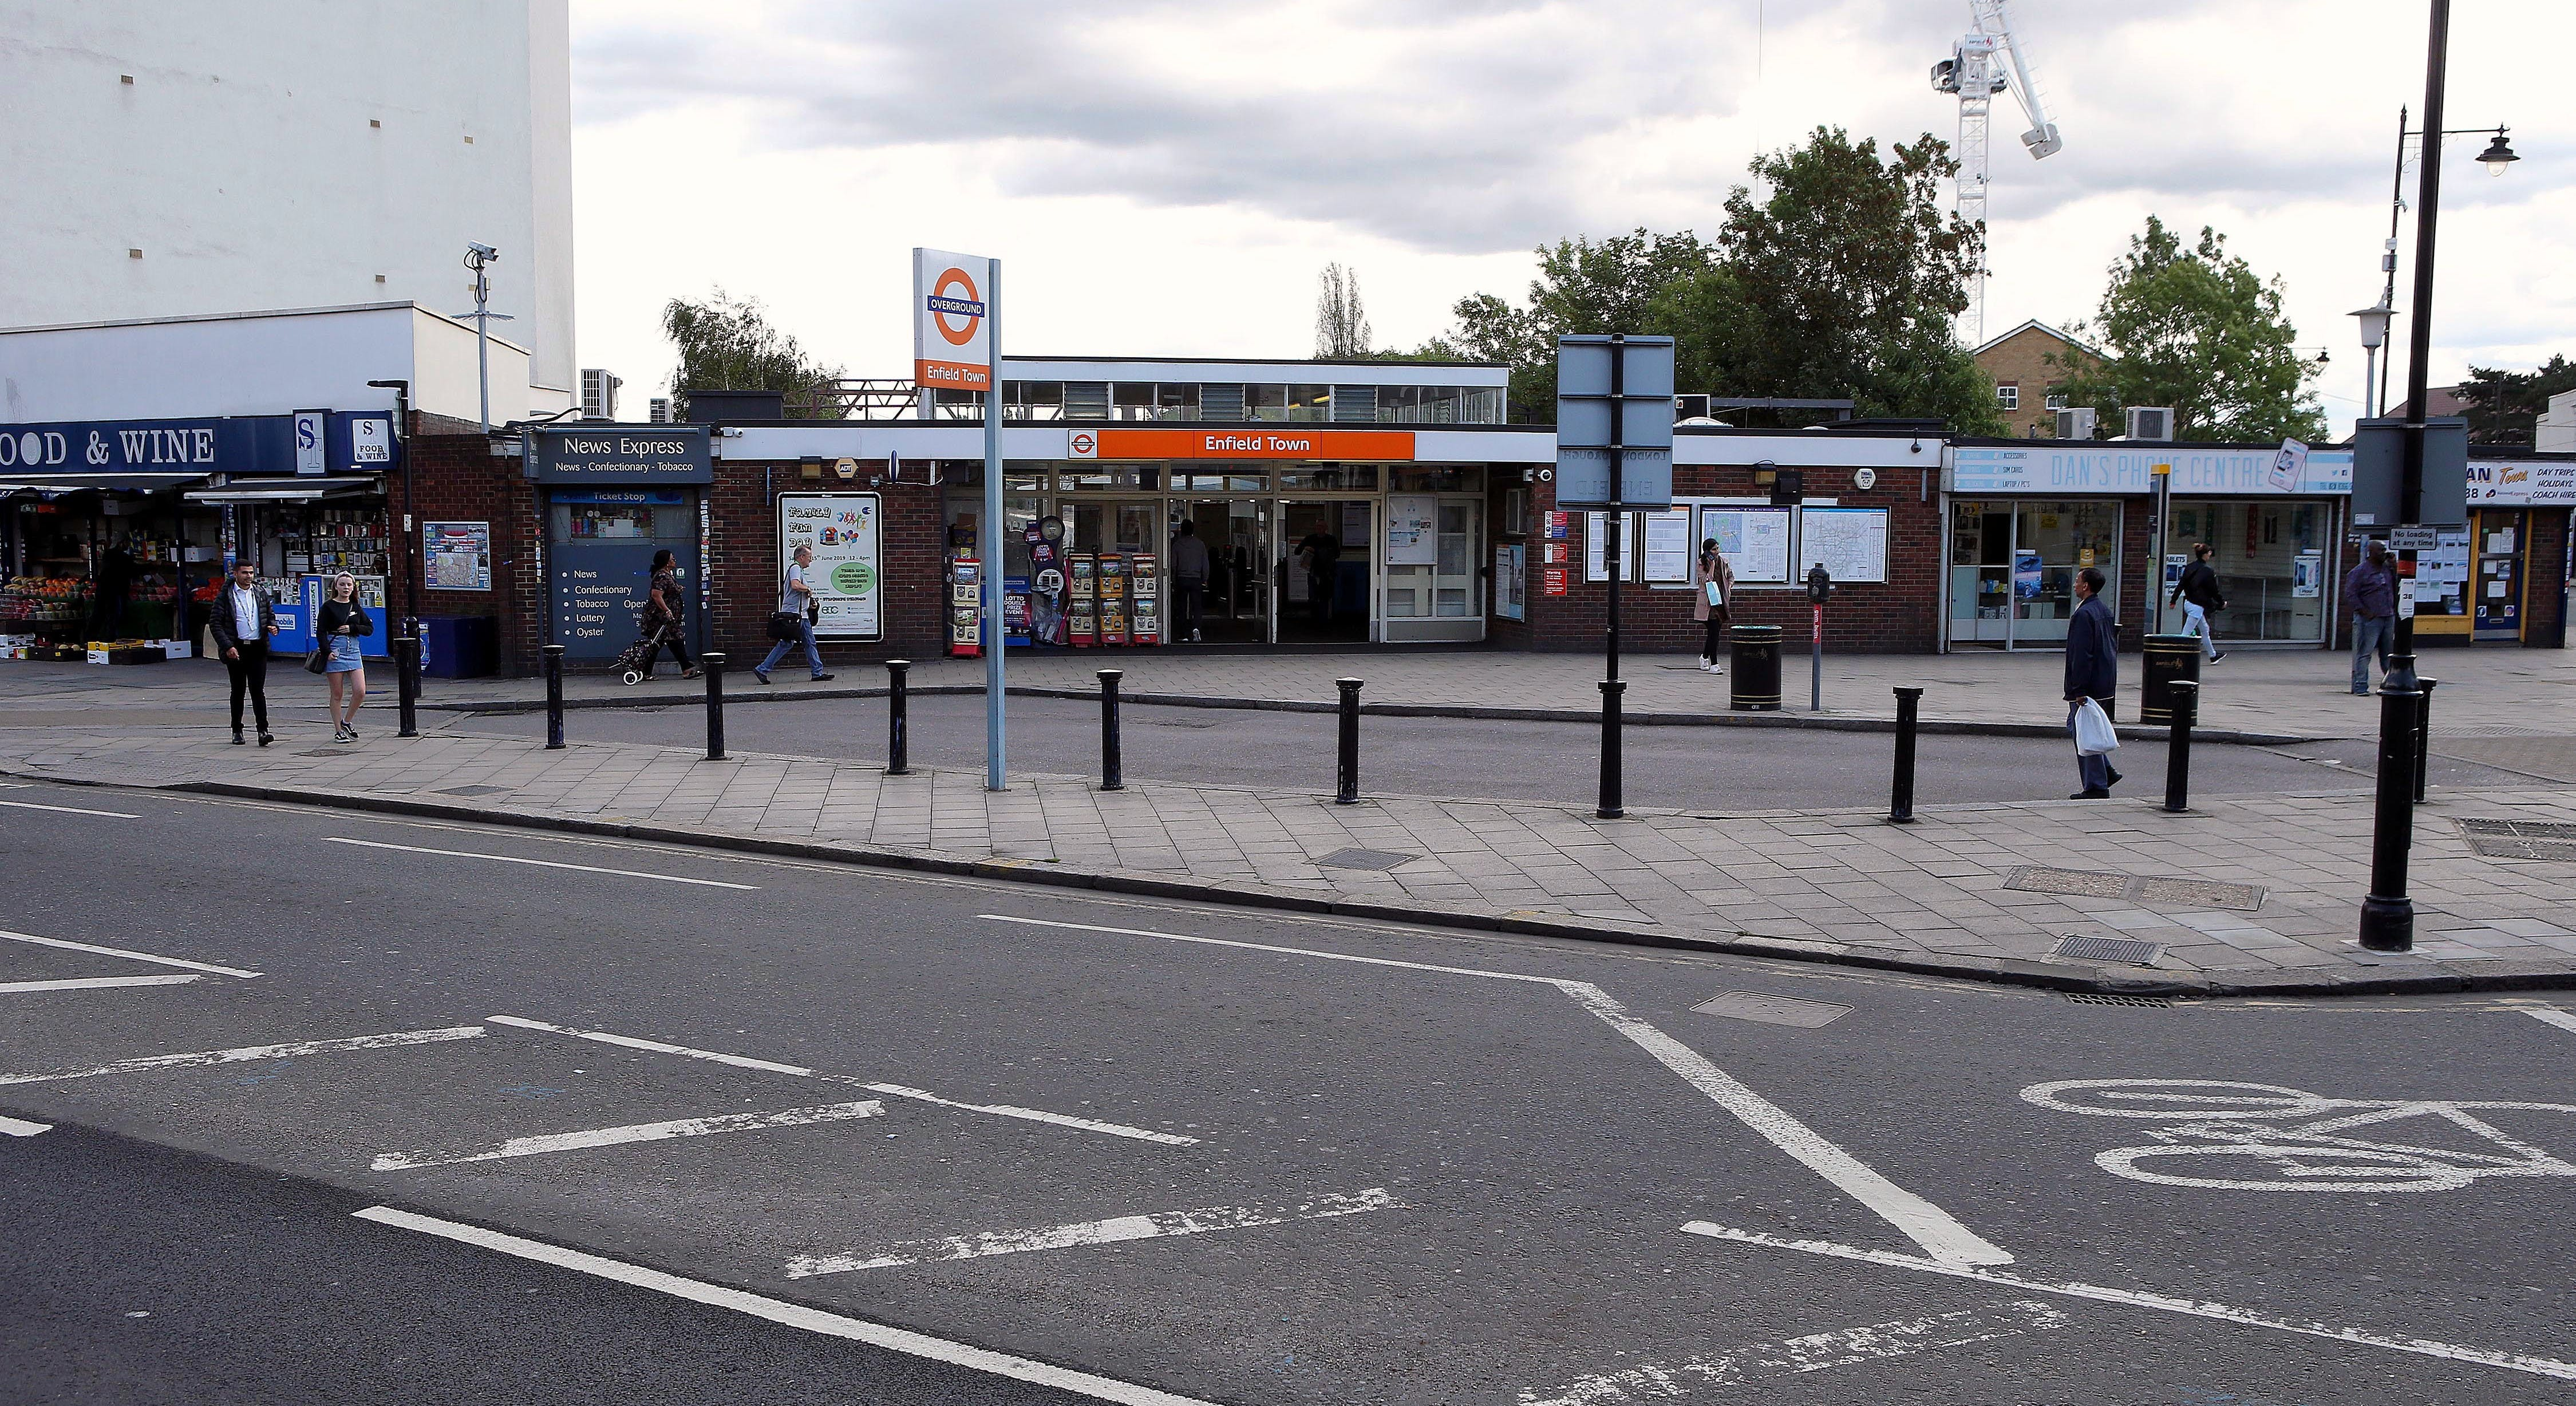 A view of the Enfield Town Station Plaza